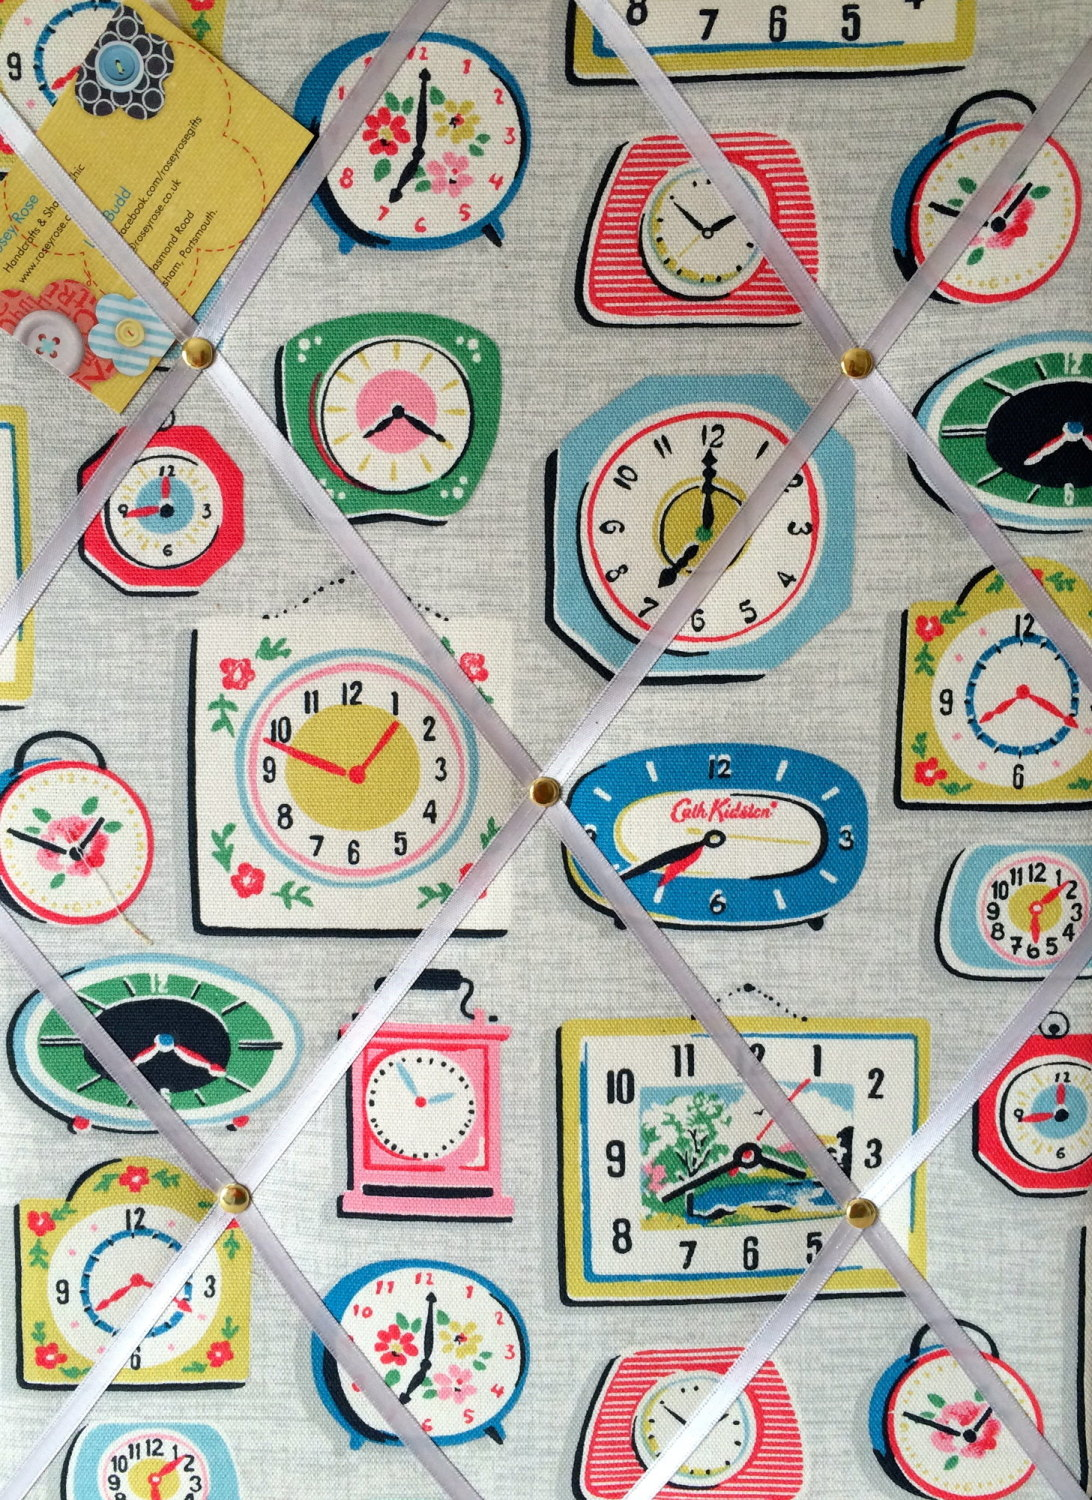 Medium 40x30cm Cath Kidston Clocks Grey Hand Crafted Fabric Notice / Pin /